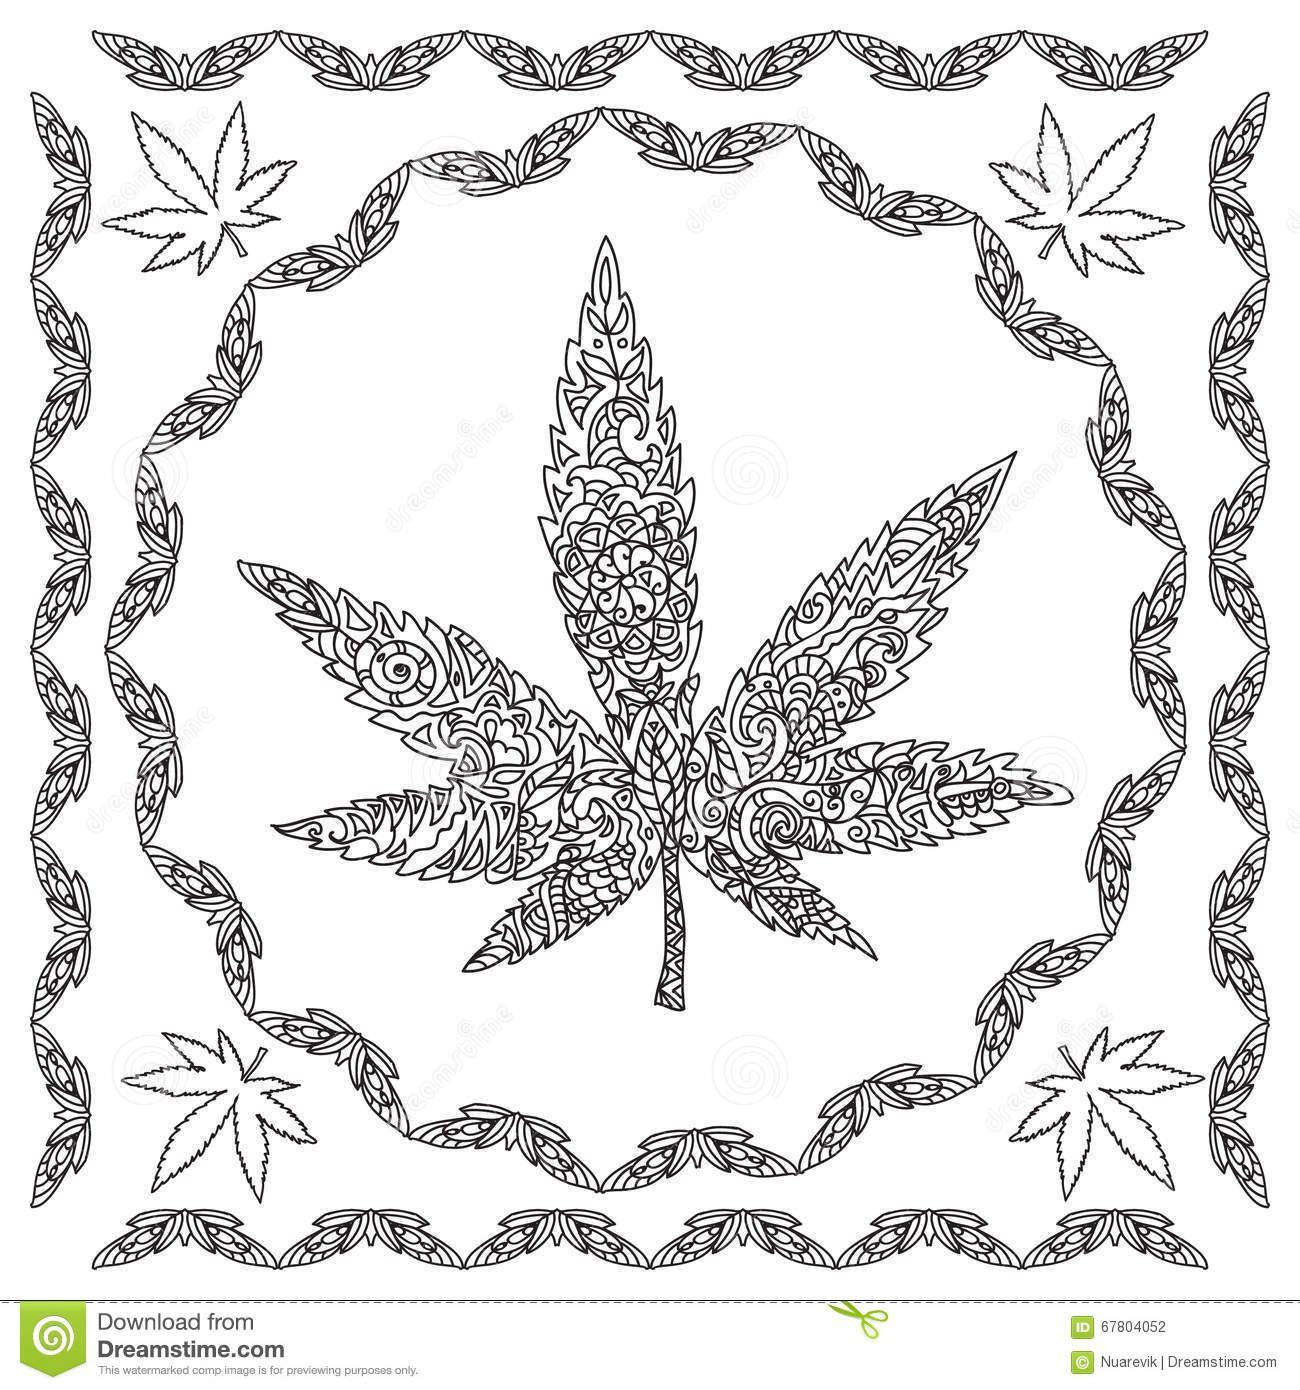 marijuana coloring pages Decorative Cannabis Coloring Page Stock Illustration  marijuana coloring pages